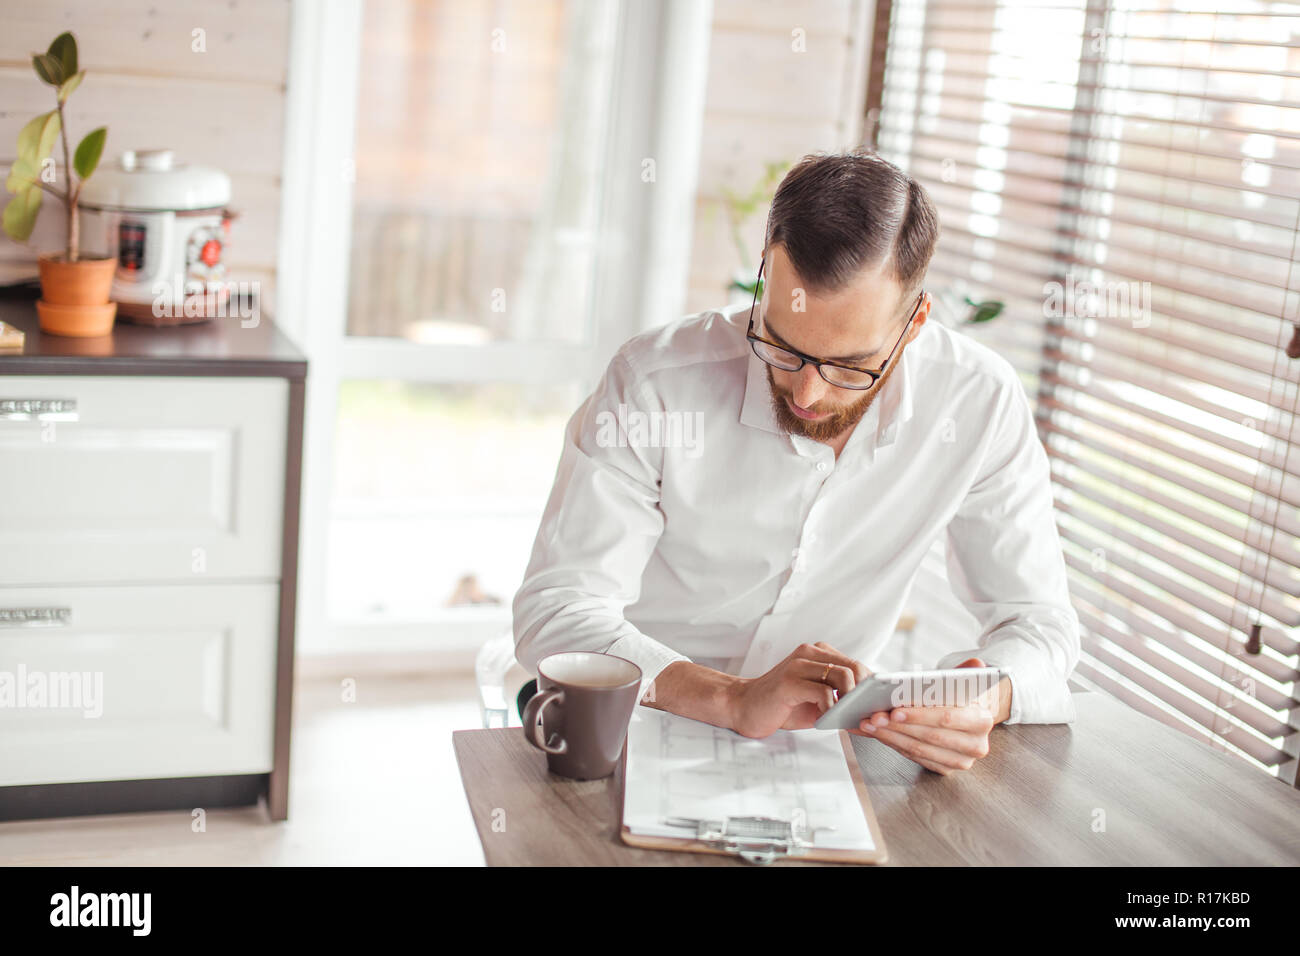 Serious applicant sitting in boardroom, preparing for interview with employer. - Stock Image